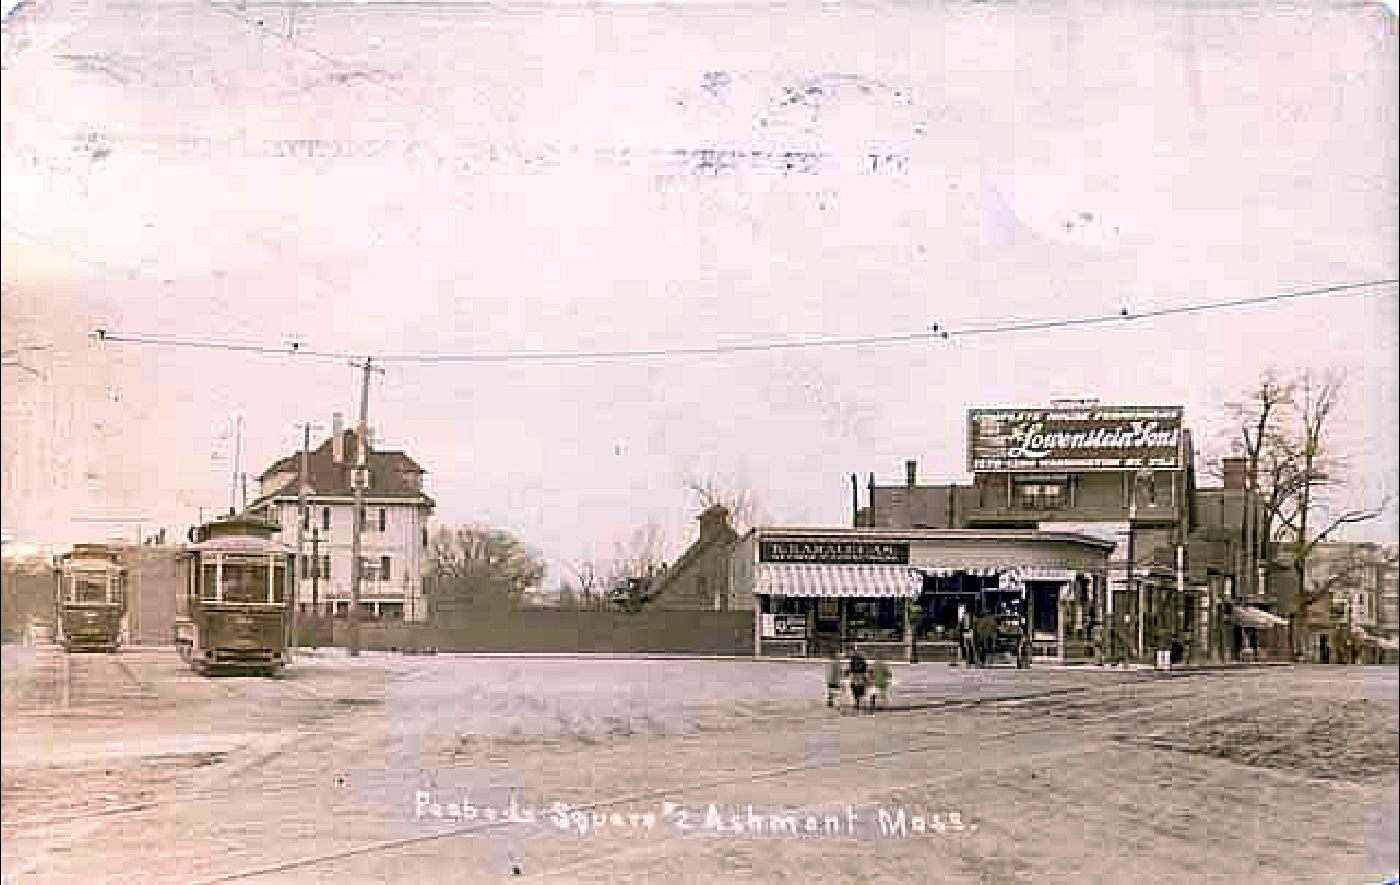 Peabody Square, Ashmont, Mass. Real photo ca. 1910-13.